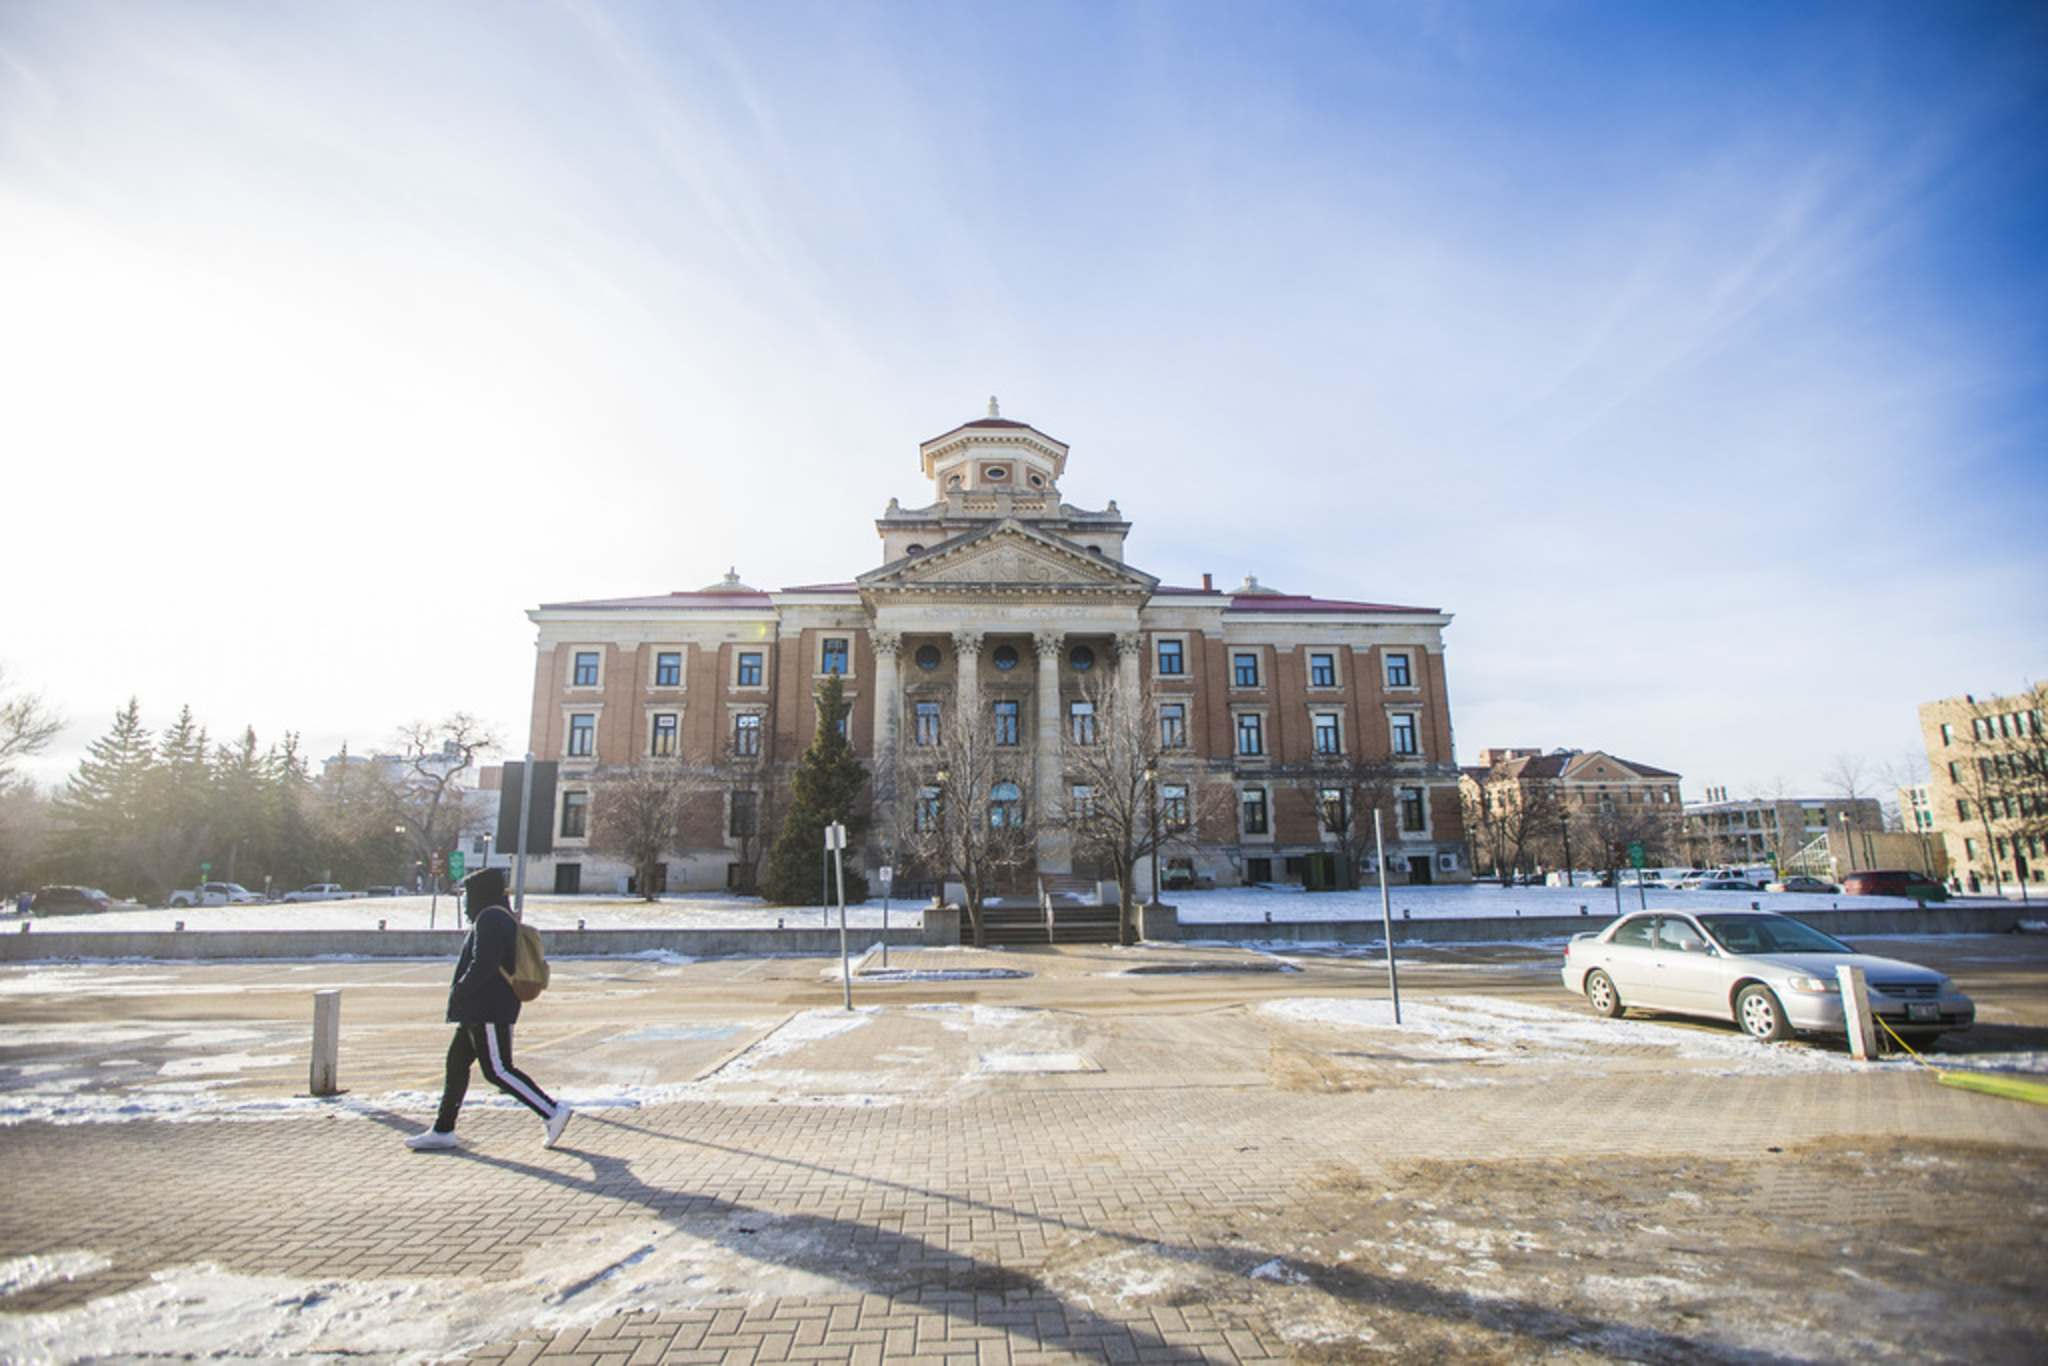 MIKAELA MACKENZIE / WINNIPEG FREE PRESS</p><p>The University of Manitoba's senate recently approved a motion to temporarily alter how grade point averages (GPAs) — which typically take into account all of a student's final course grades — are calculated.</p>